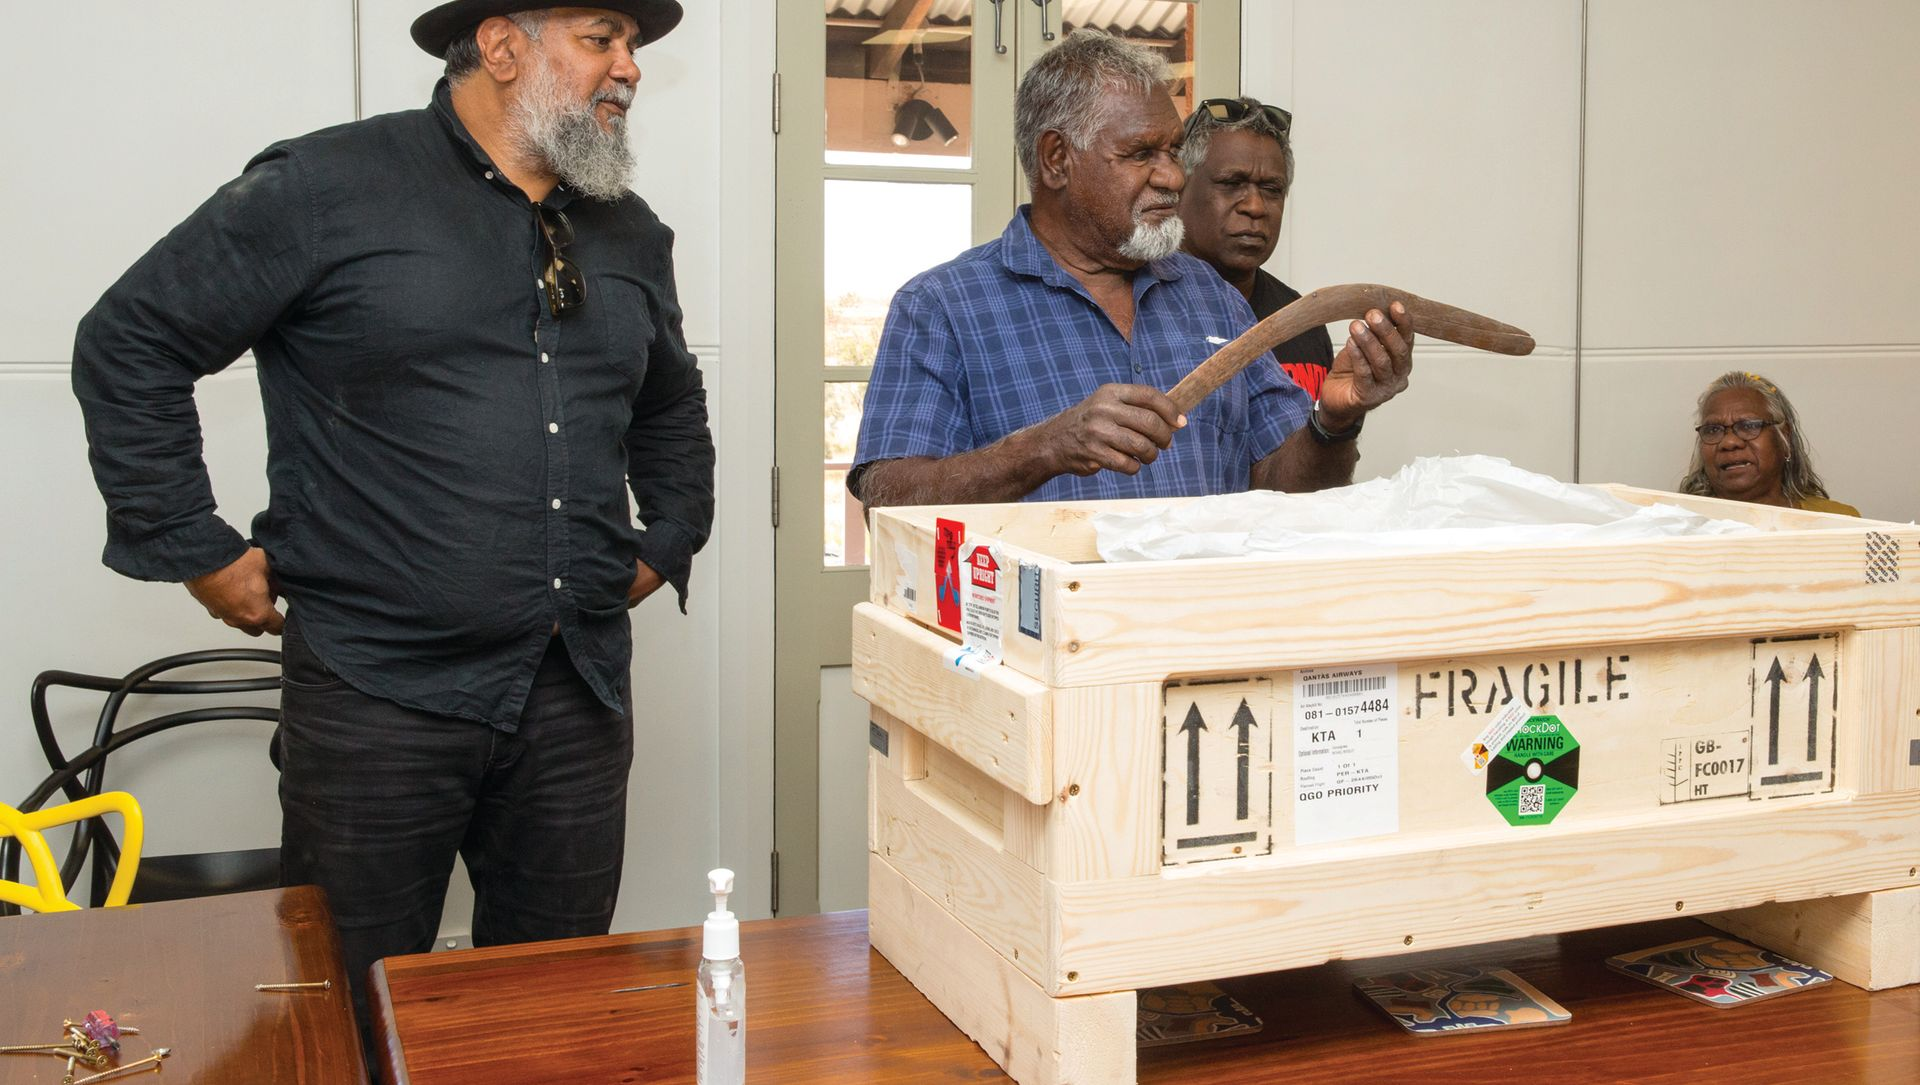 Eight objects were repatriated from a UK private collector to the Yindjibarndi people via the Australian government-funded project Return of Cultural Heritage Photo: Tangiora; © Ngaarda Media for AIATSIS